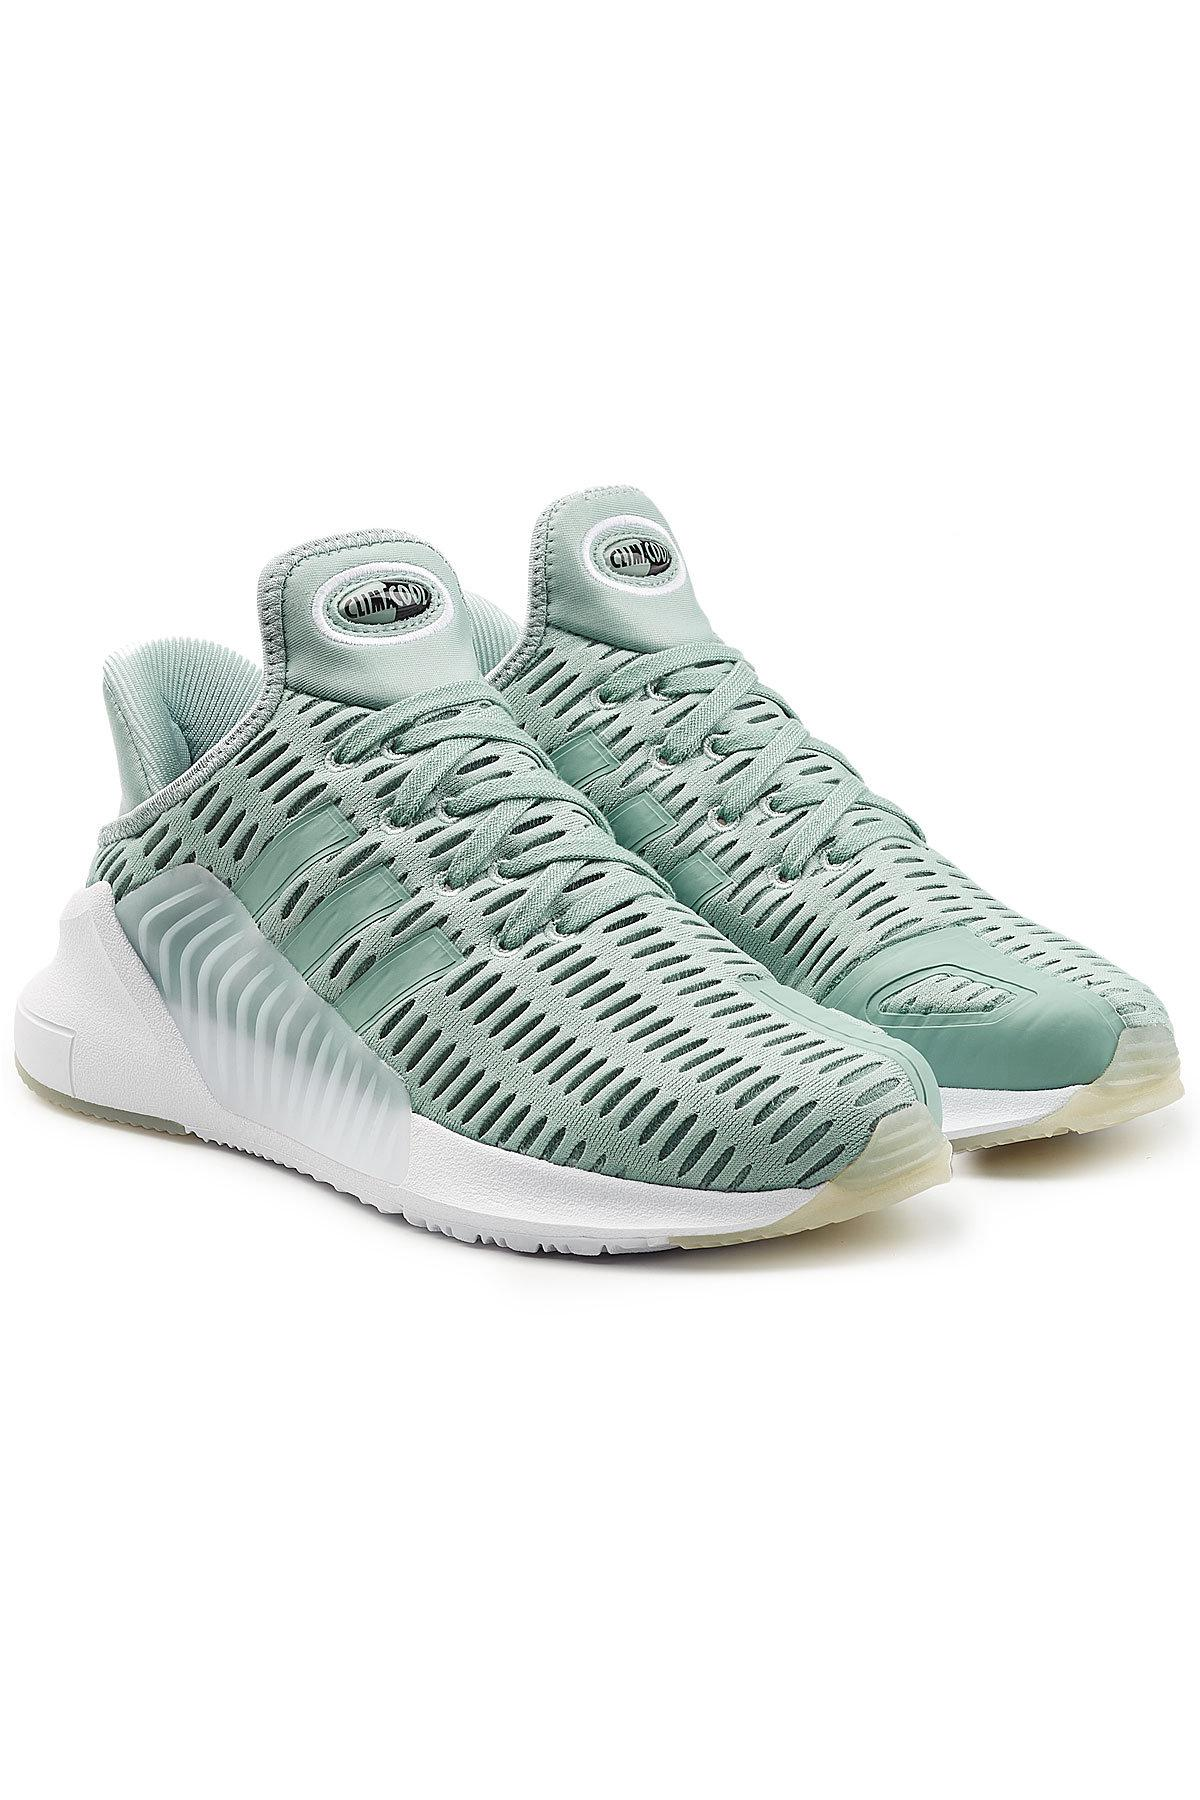 adidas Originals. Women's Blue Climacool 02/17 Sneakers With Mesh